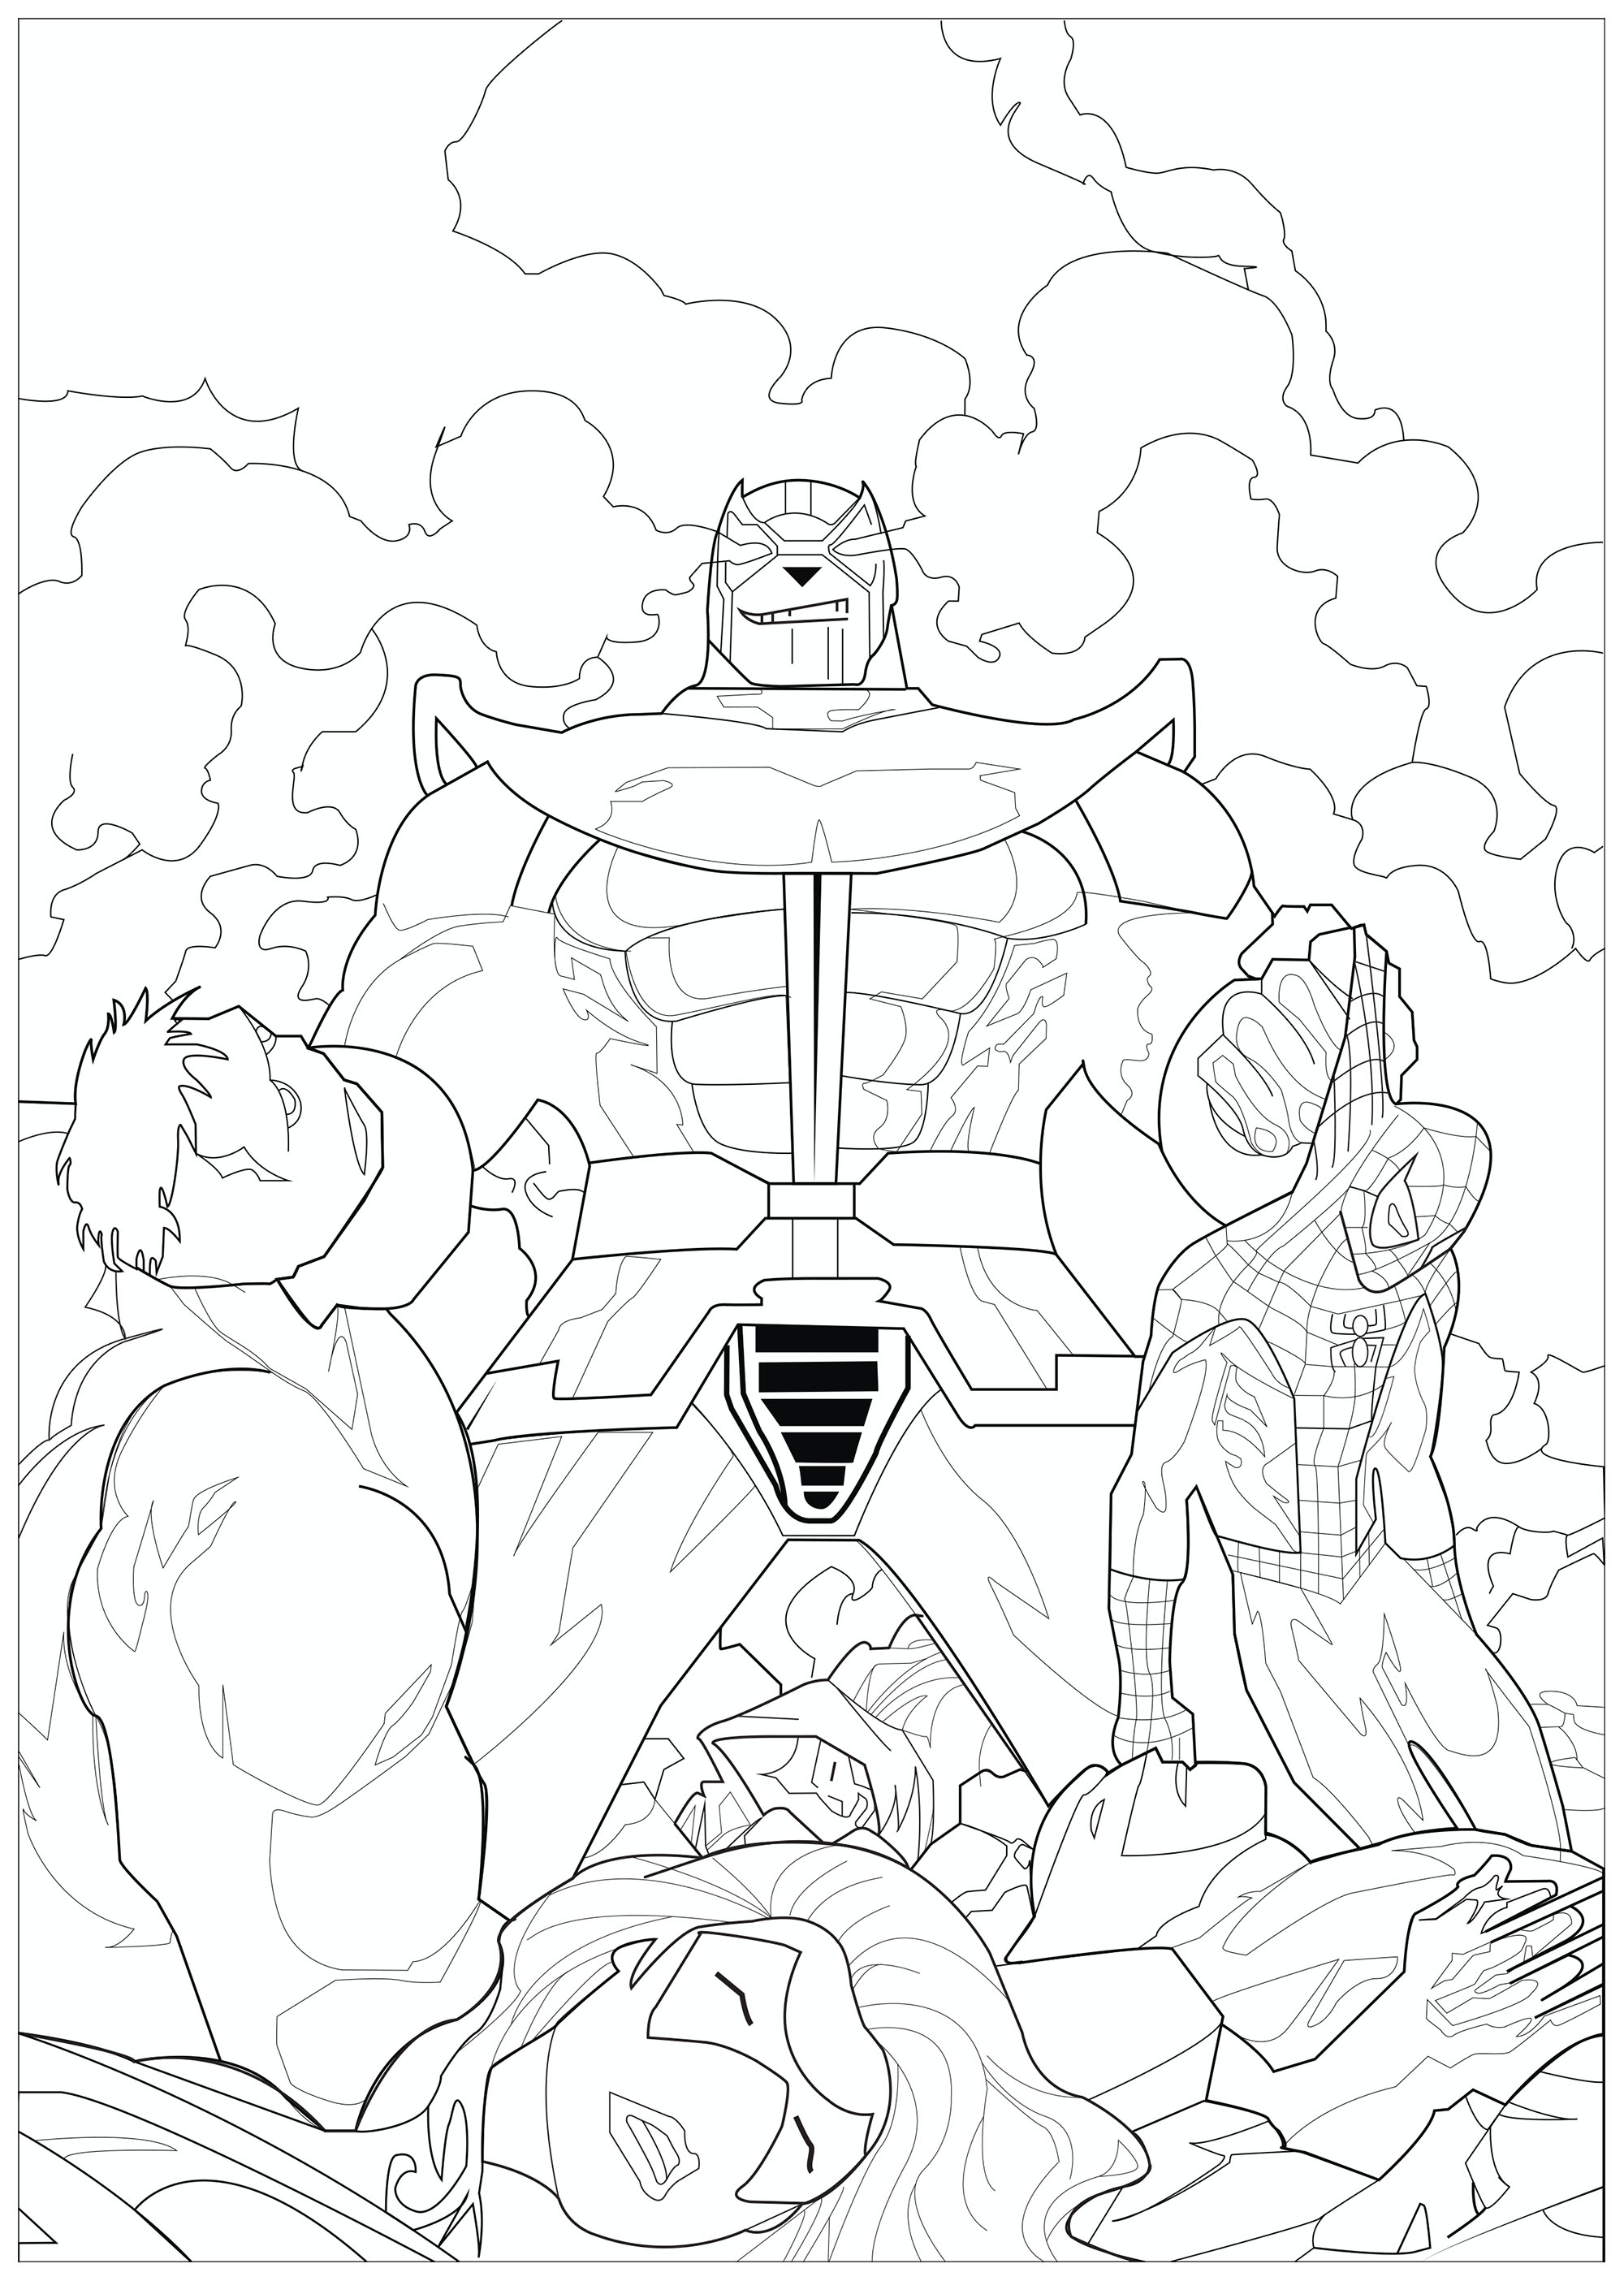 Marvel - Coloring Pages for Adults